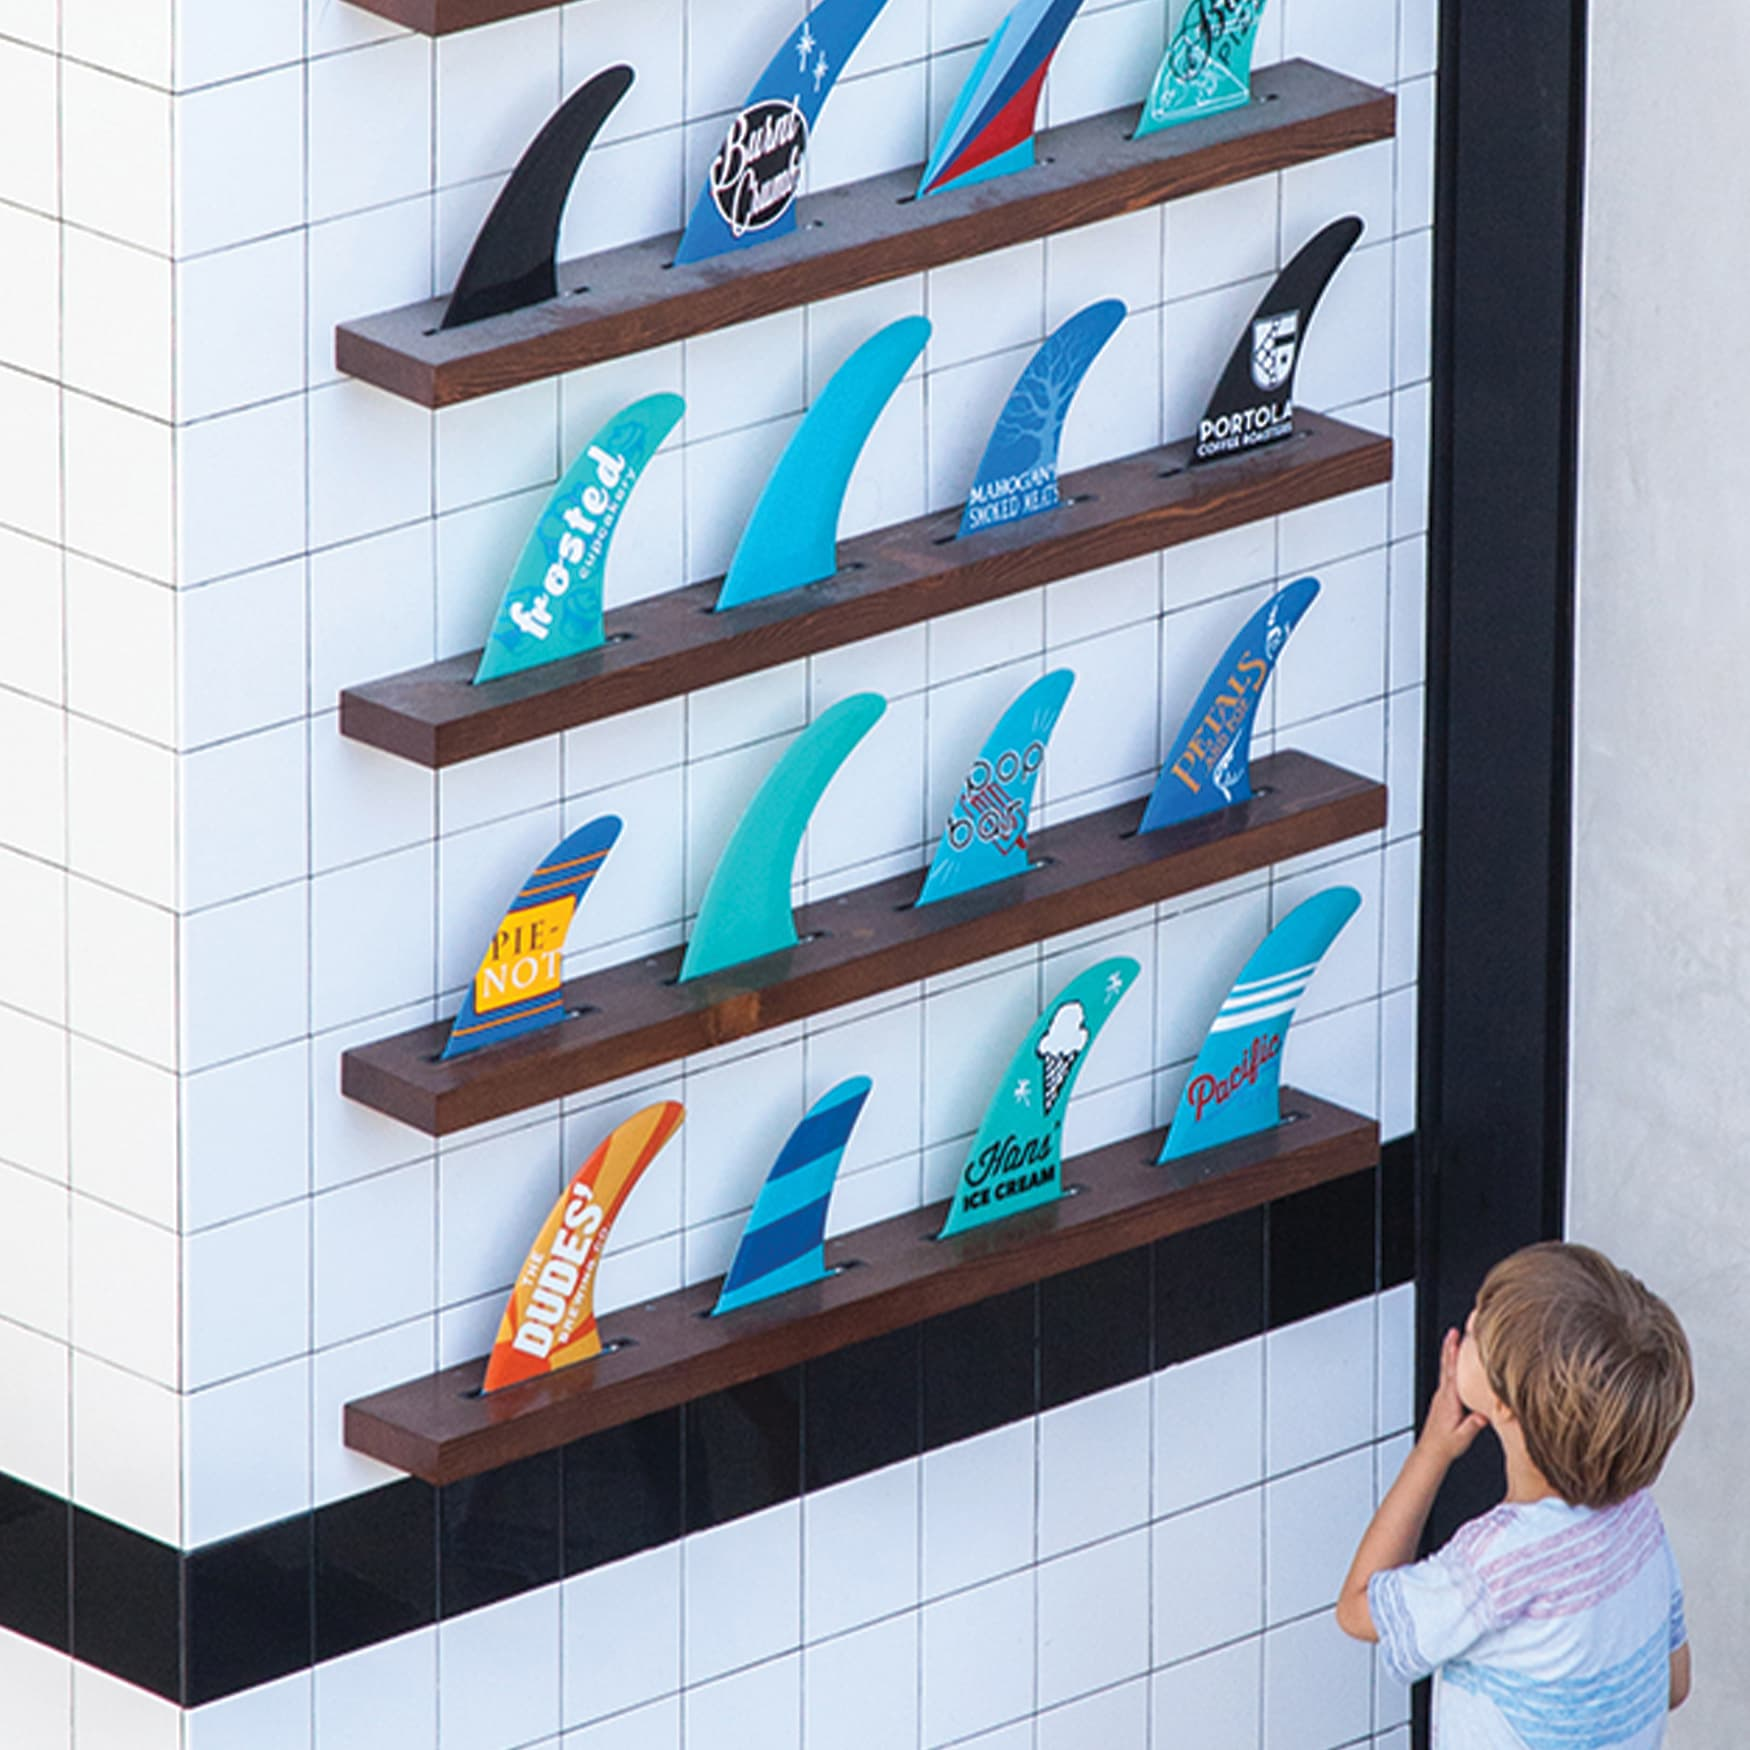 Pacific City specialty graphic installation of surf fins lined up on a wall covered in art and project information.